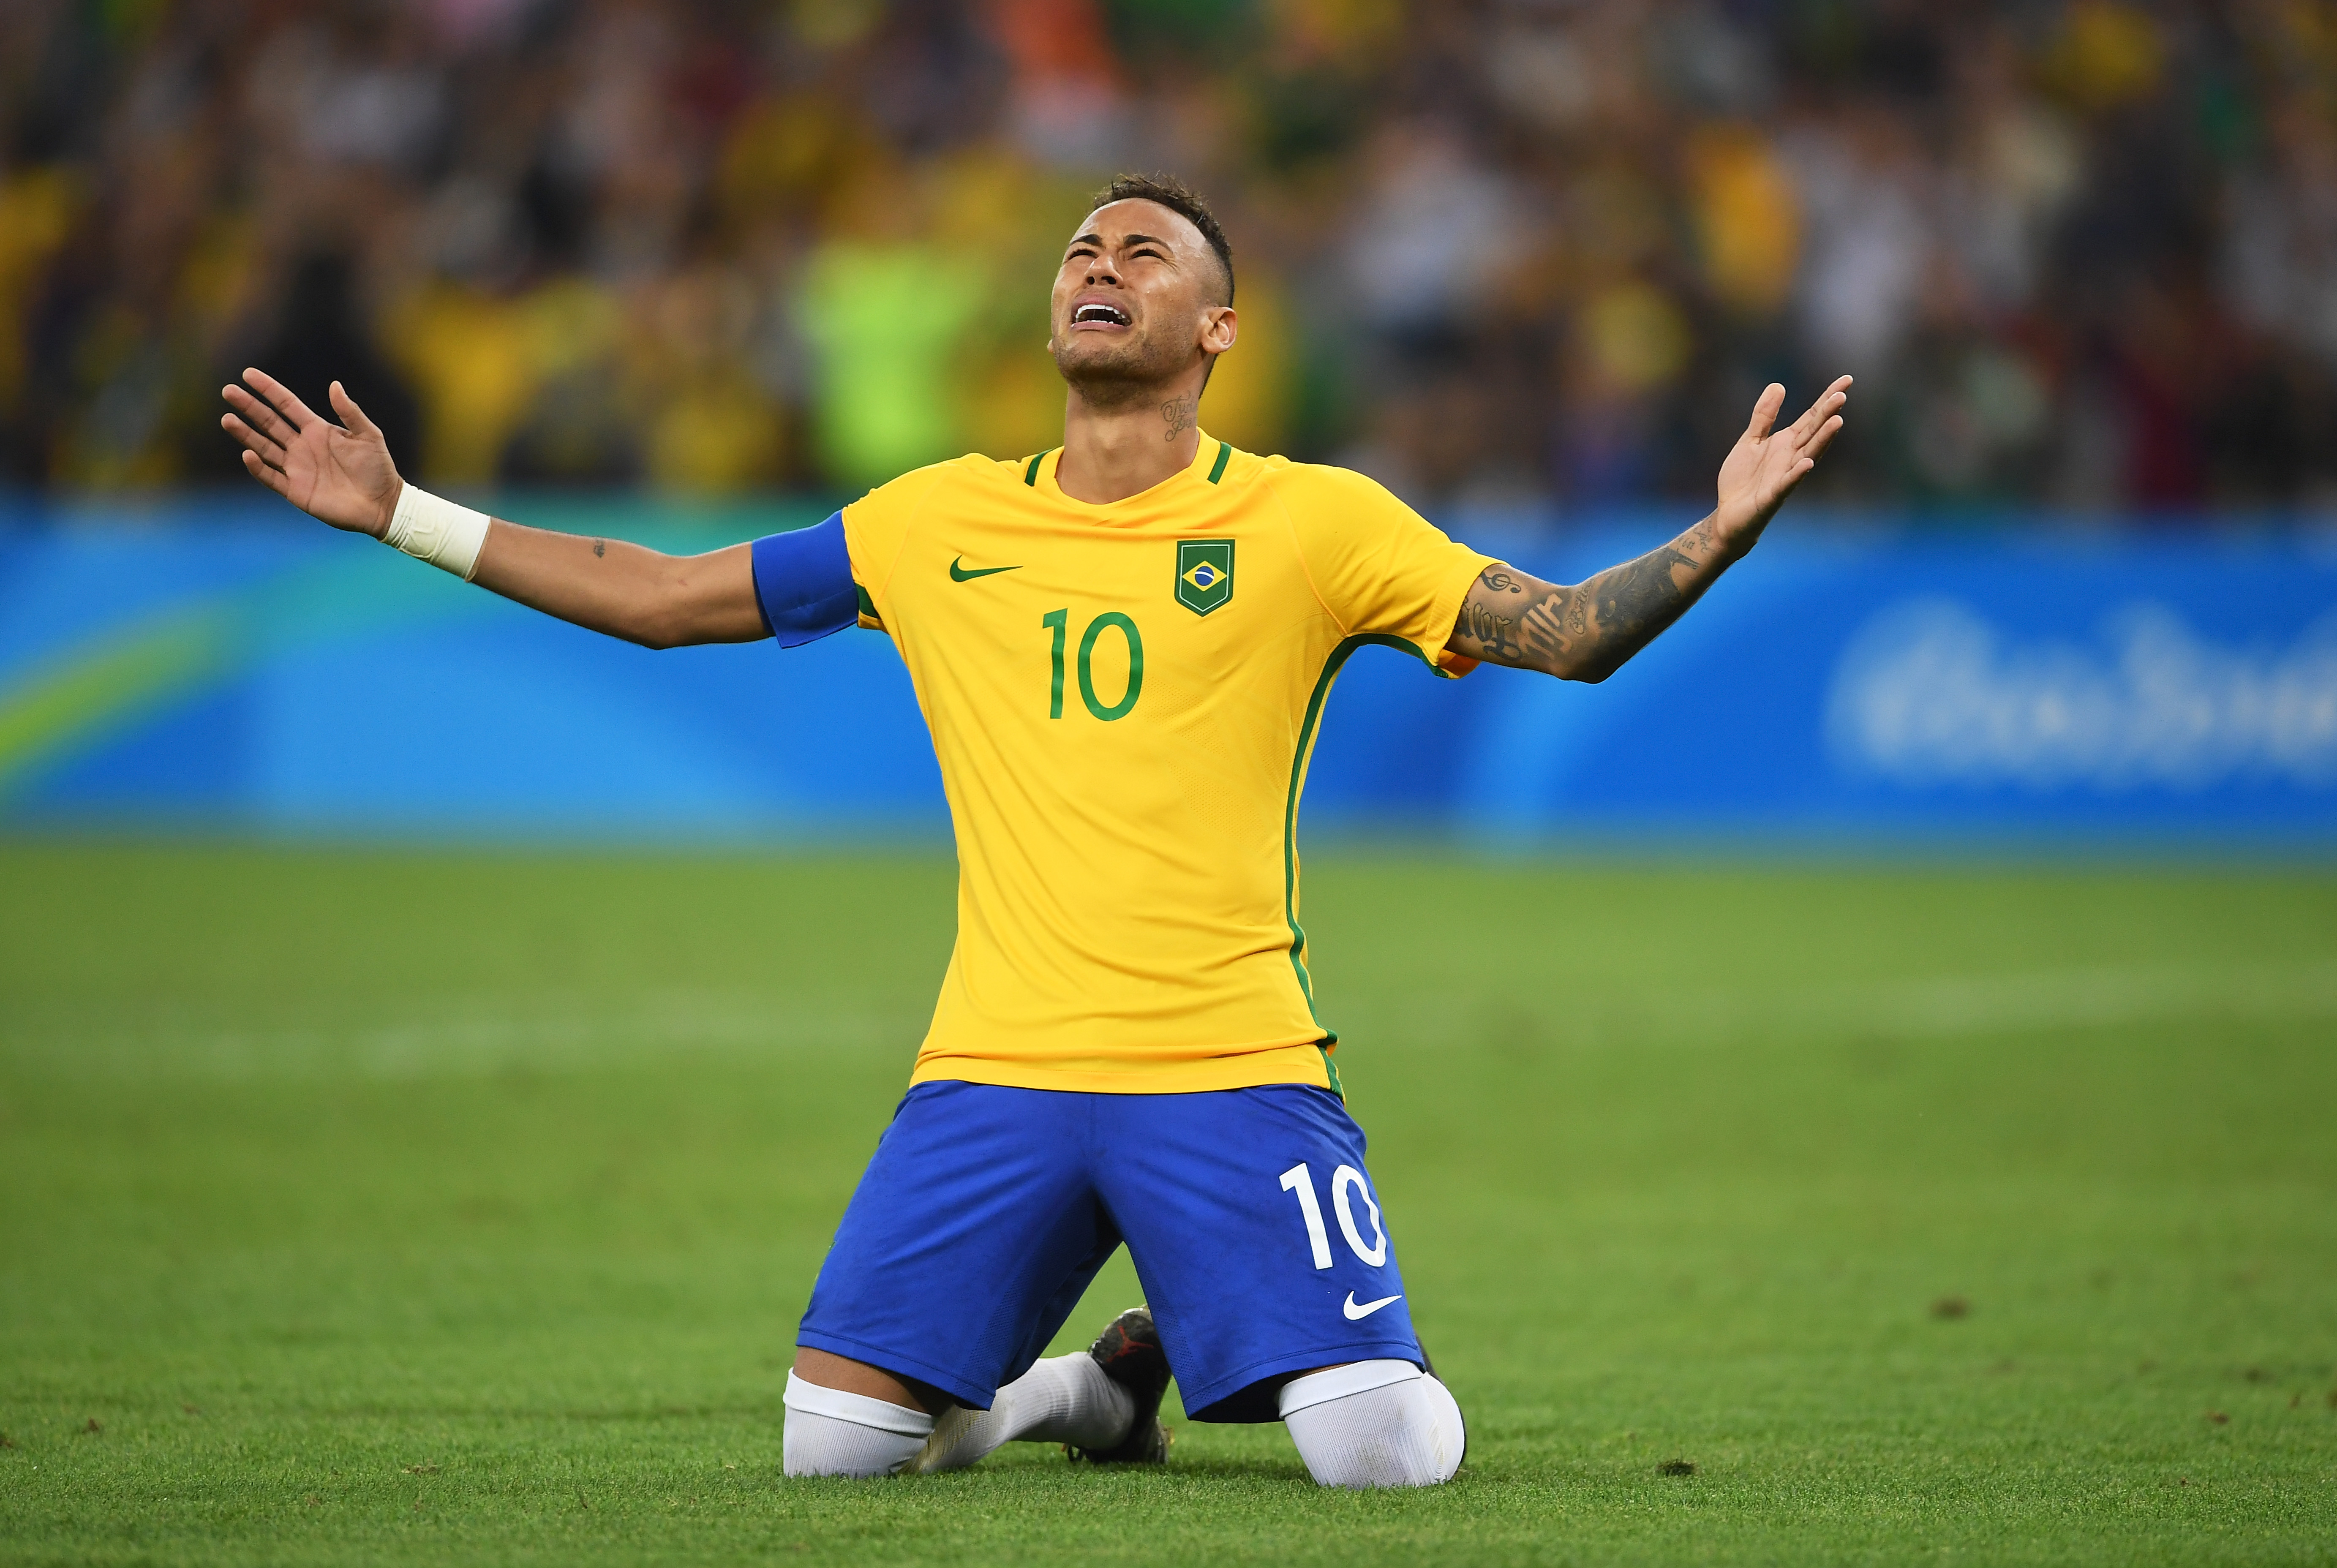 Neymar of Brazil celebrates scoring the winning penalty in the penalty shoot out during the Men's Football Final between Brazil and Germany at the Maracana Stadium on Day 15 of the Rio 2016 Olympic Games on Aug. 20, 2016 in Rio de Janeiro, Brazil.